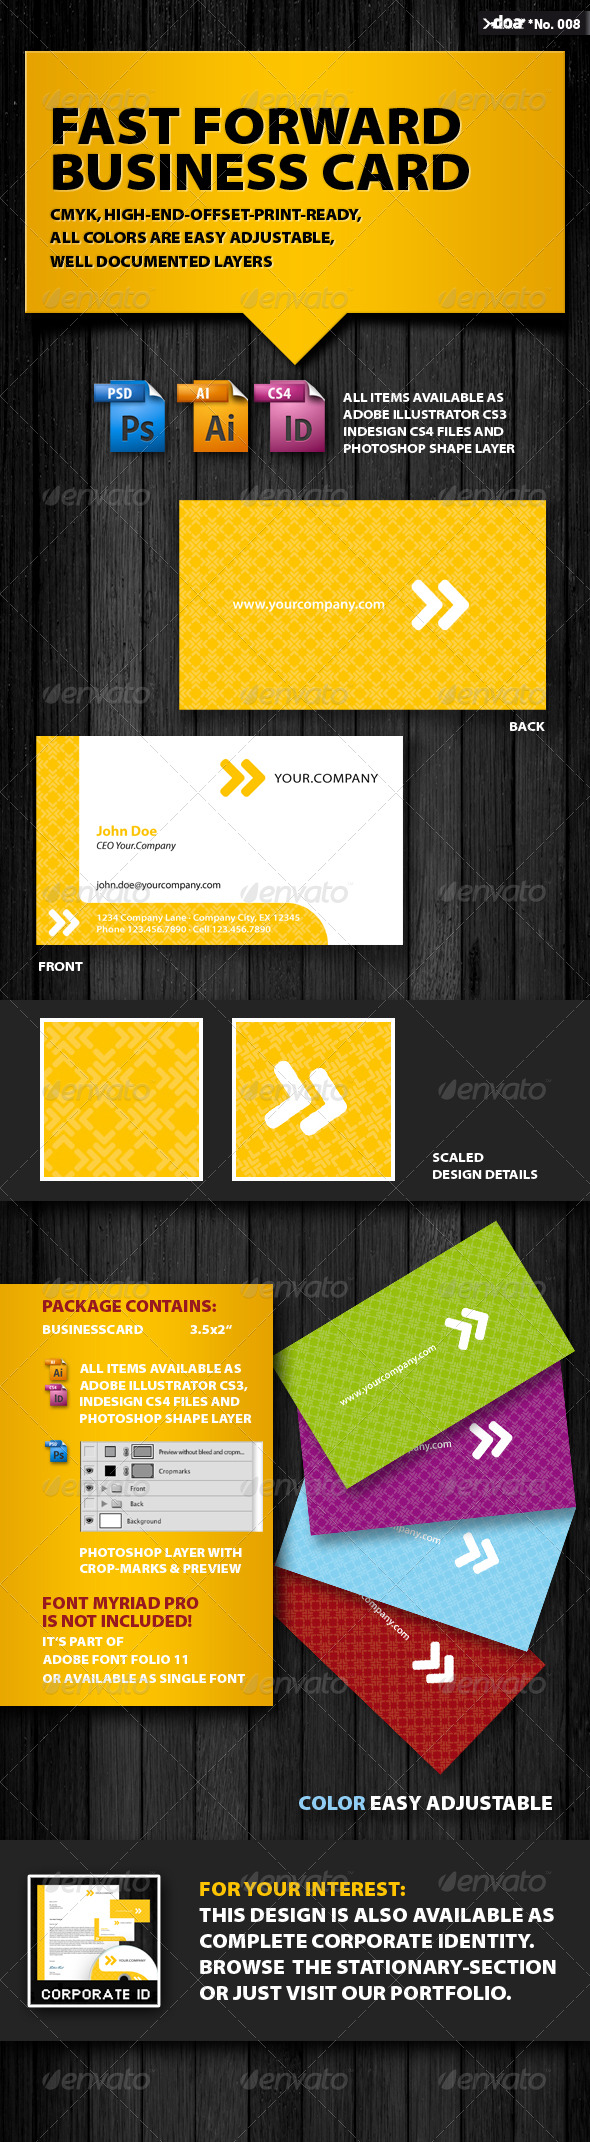 Fast Forward Business Card - Corporate Business Cards